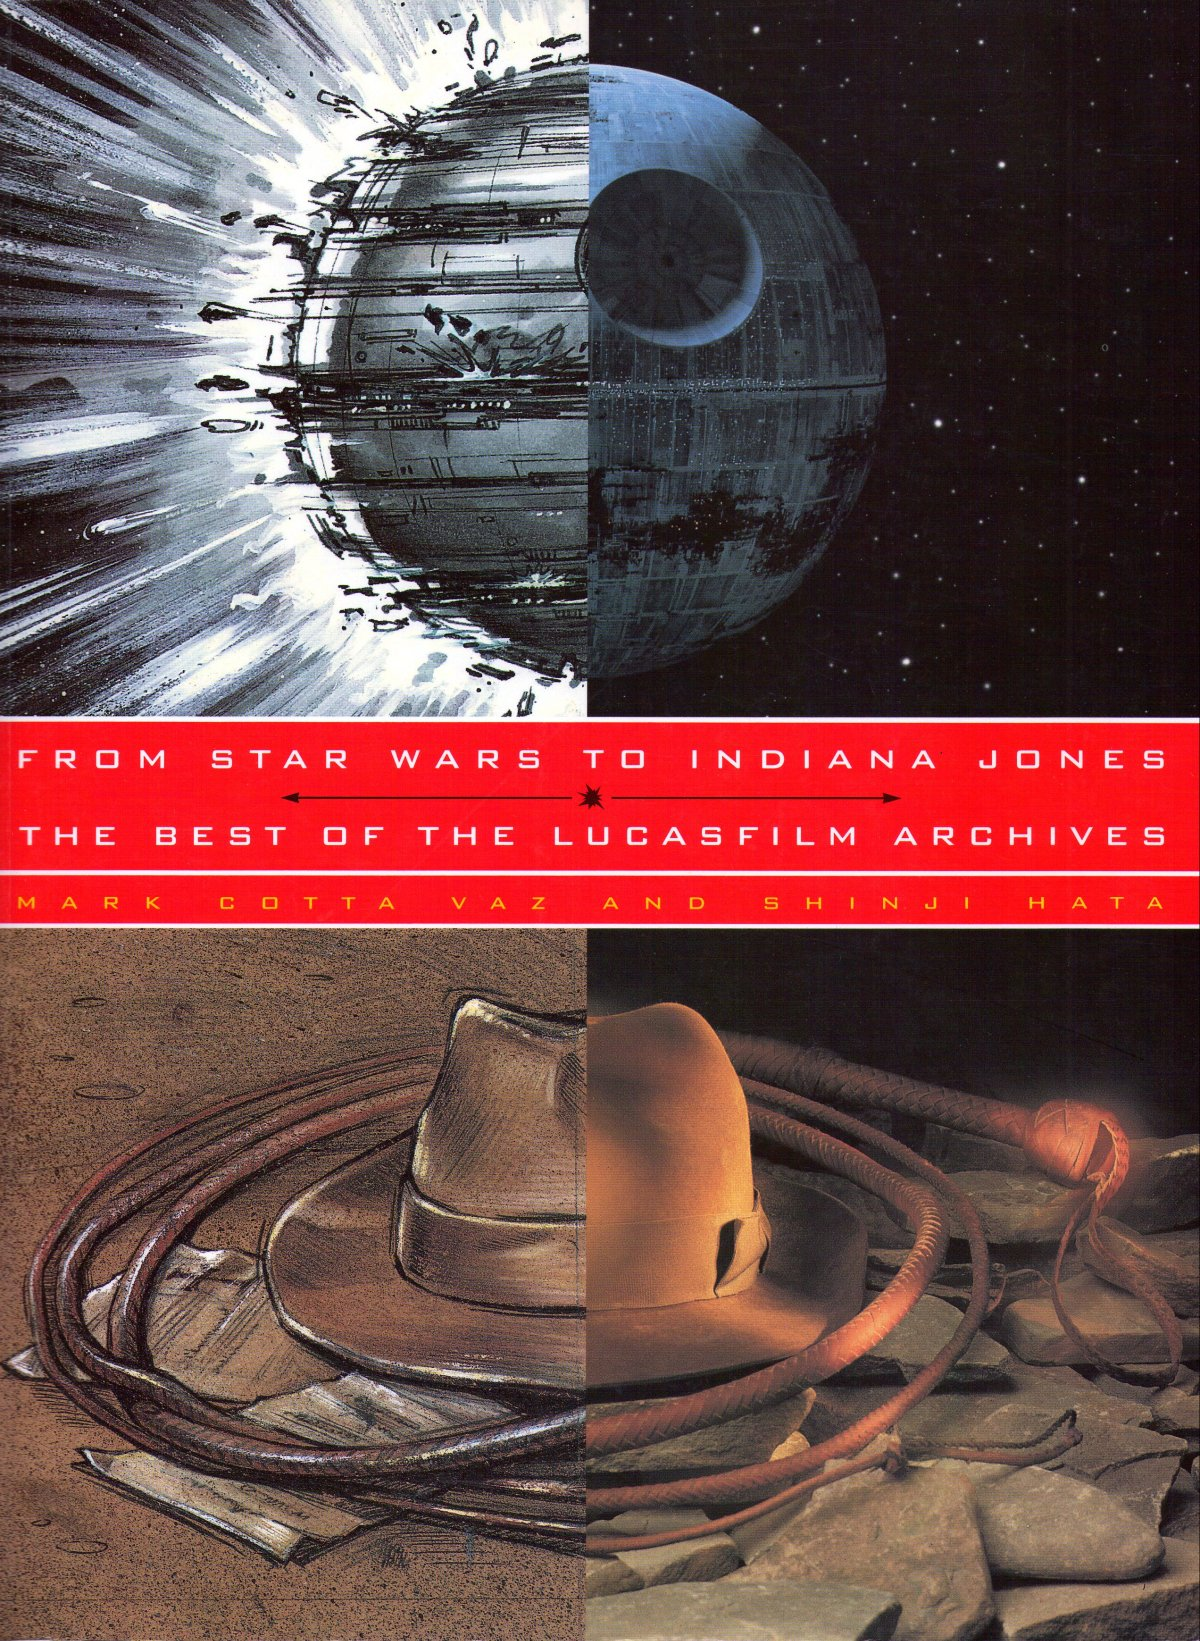 from star wars to indiana jones - the best of the lucasfilm archives